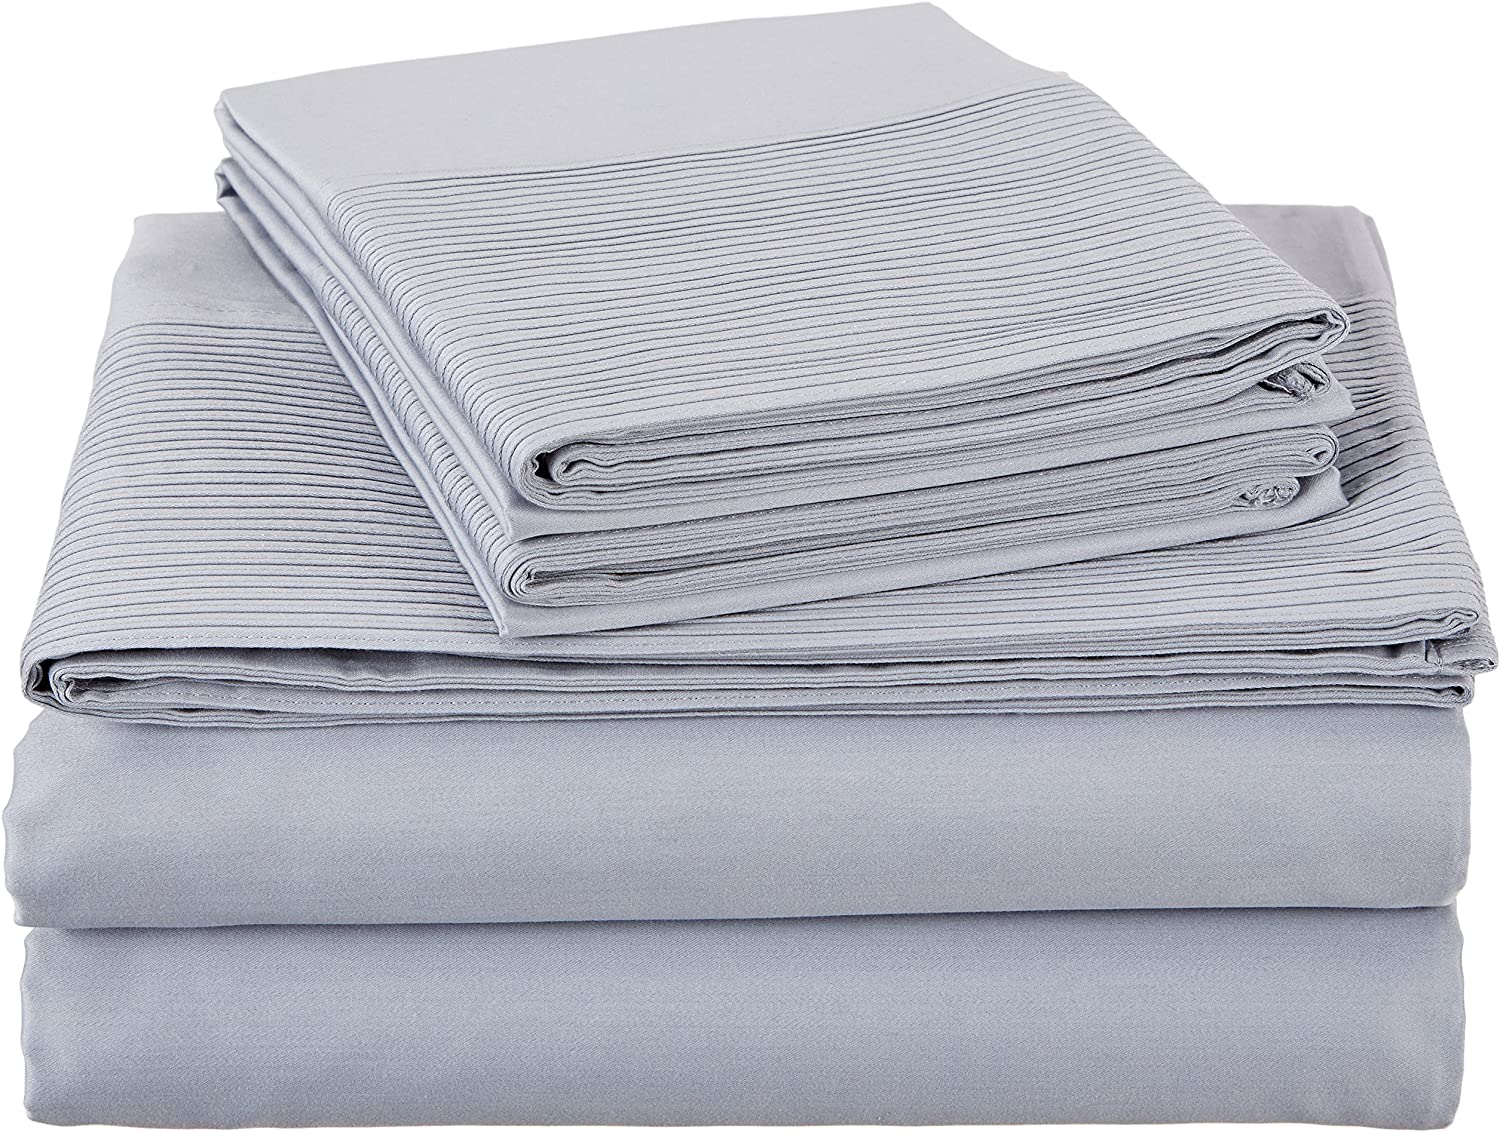 Pinzon 400-Thread-Count Egyptian Cotton Sateen Pleated Hem Sheet Set - Queen, Dusty bluee